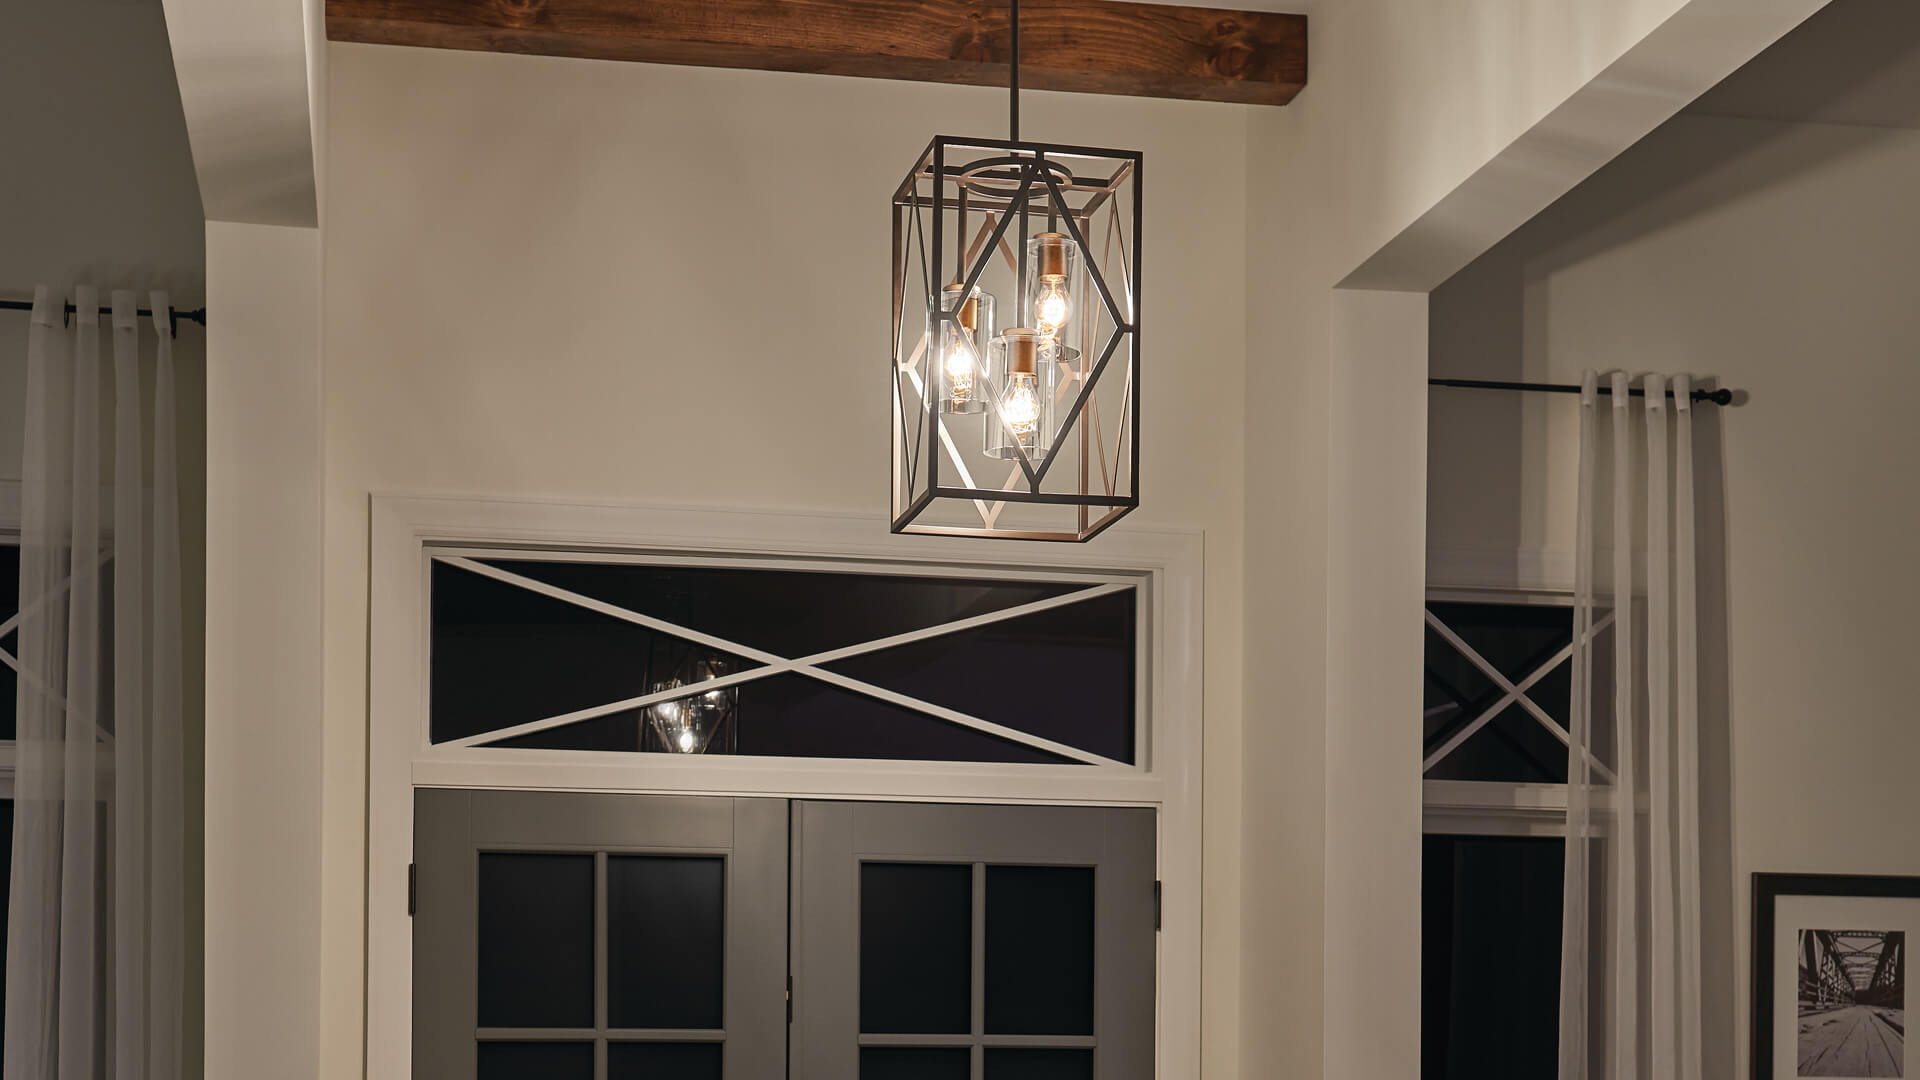 Front door at night with Pendant Solander, 82317